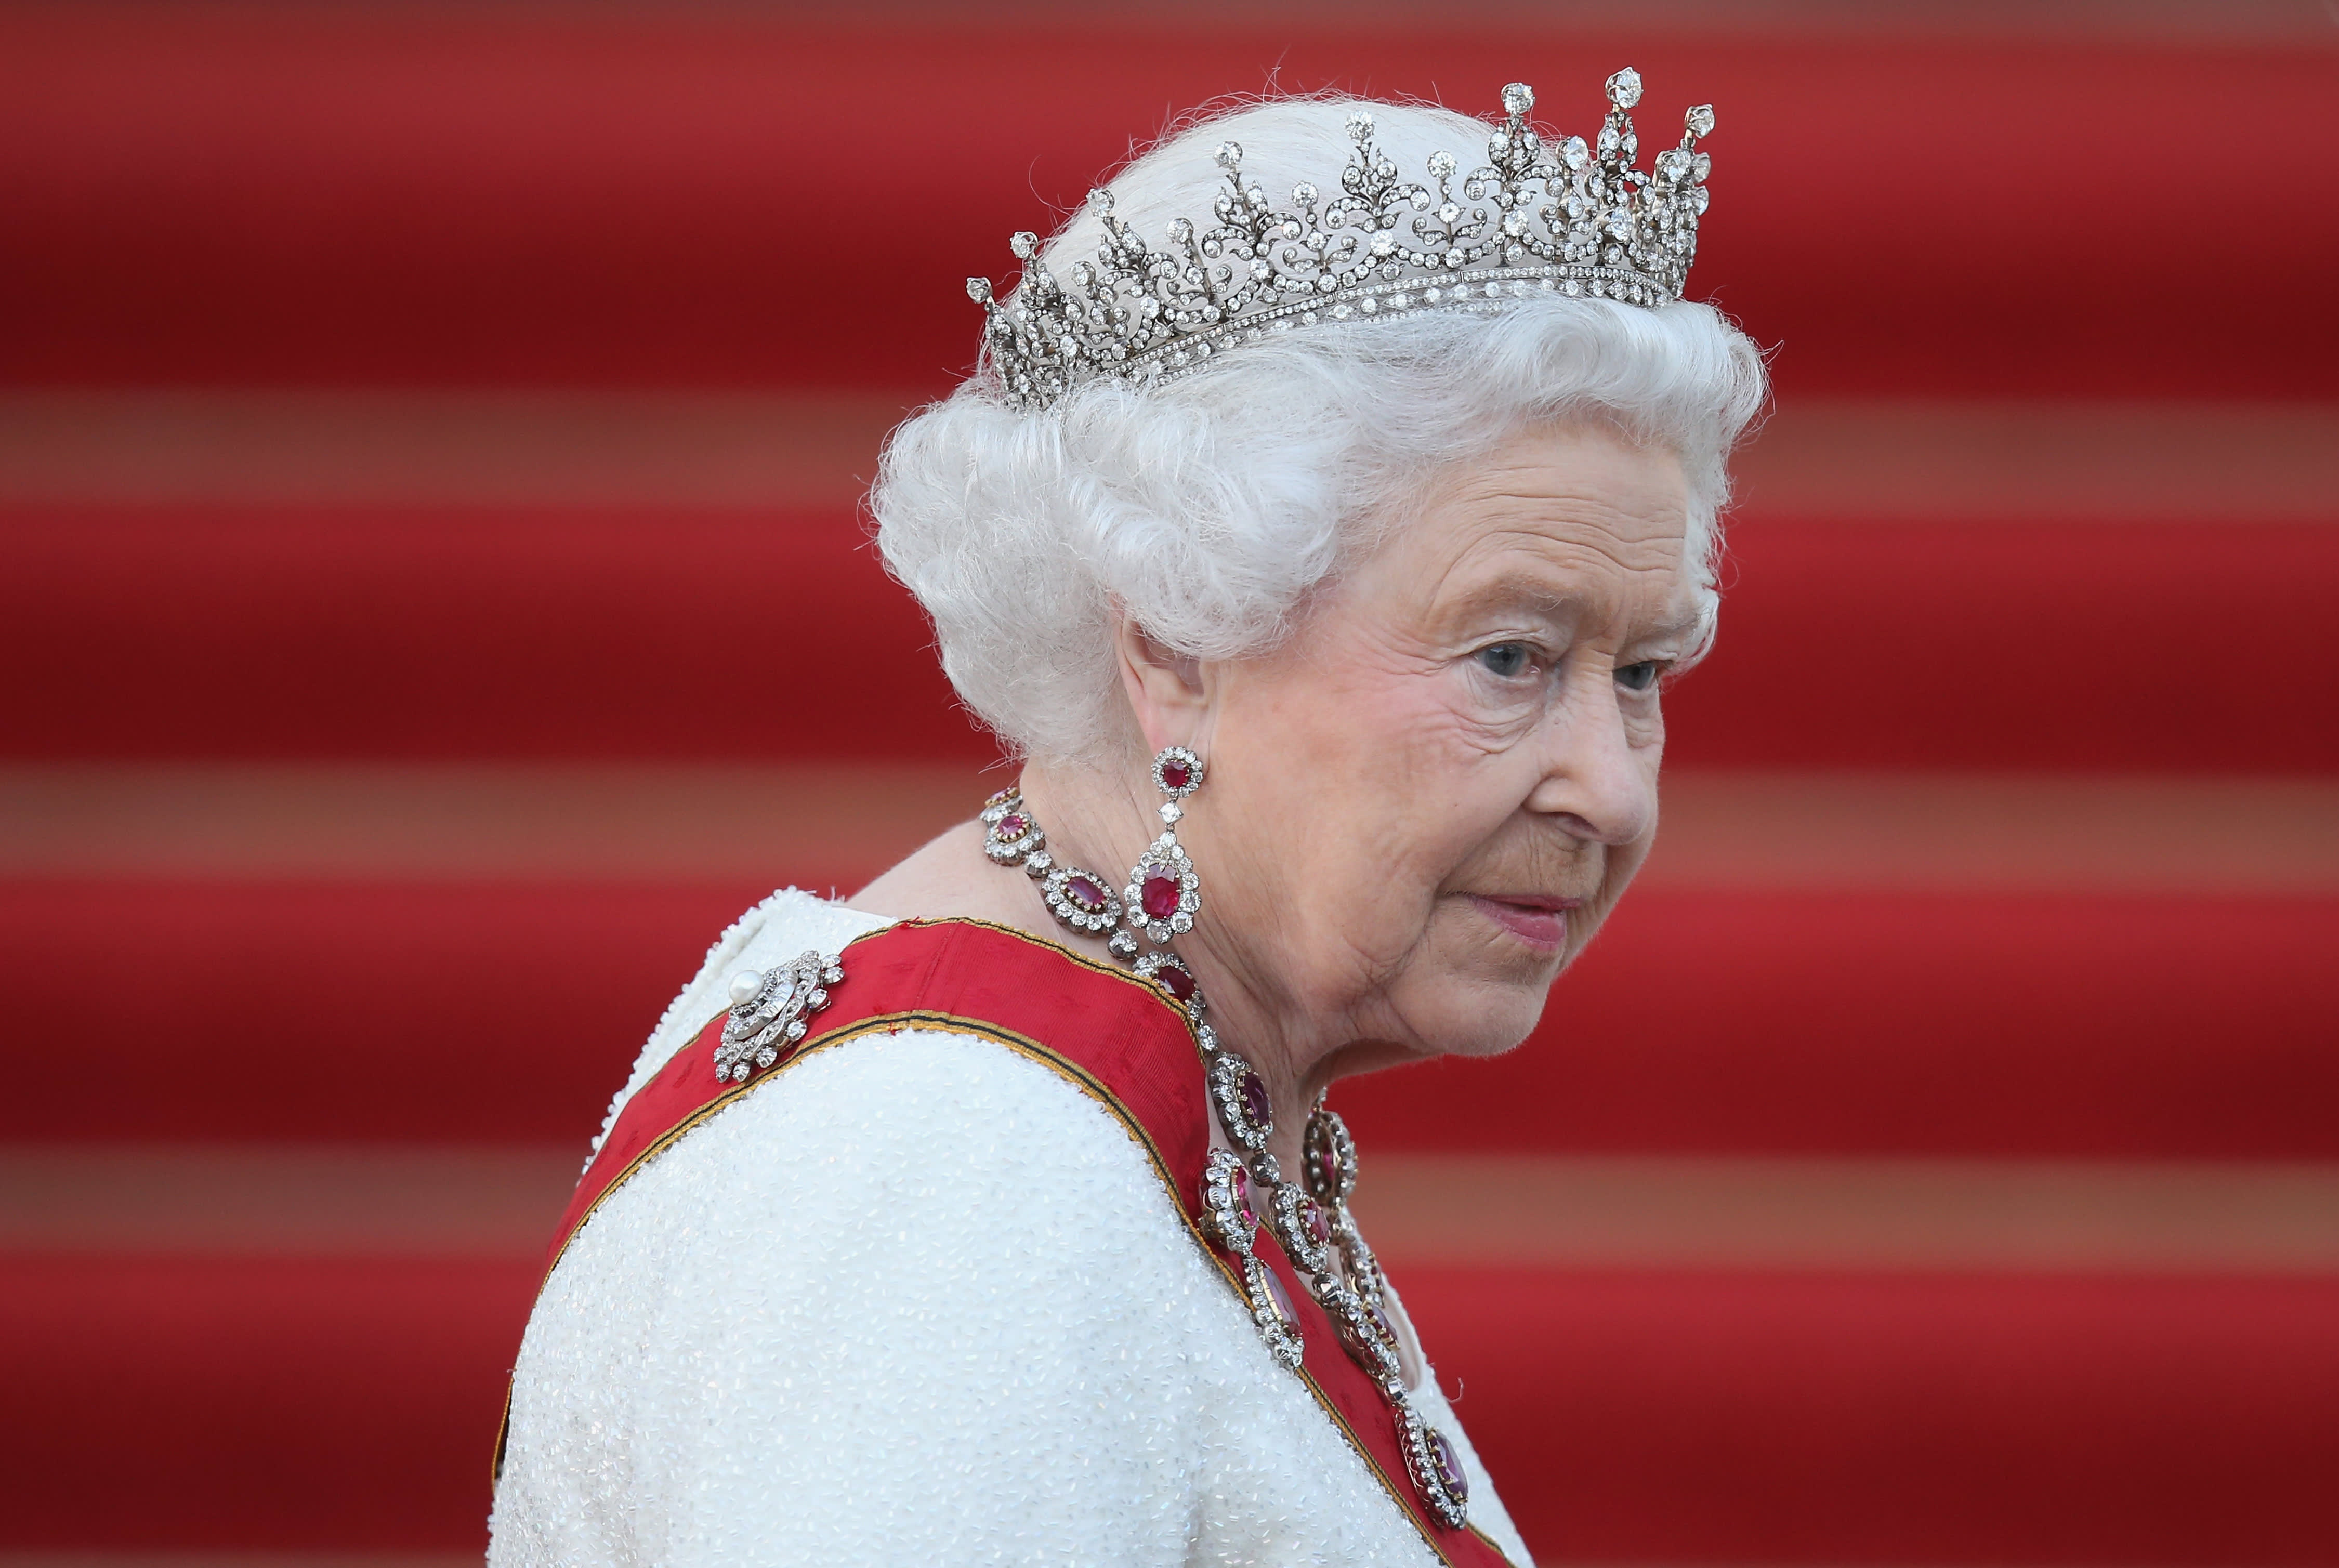 The queen will pay you up to $67,000 to manage her social media